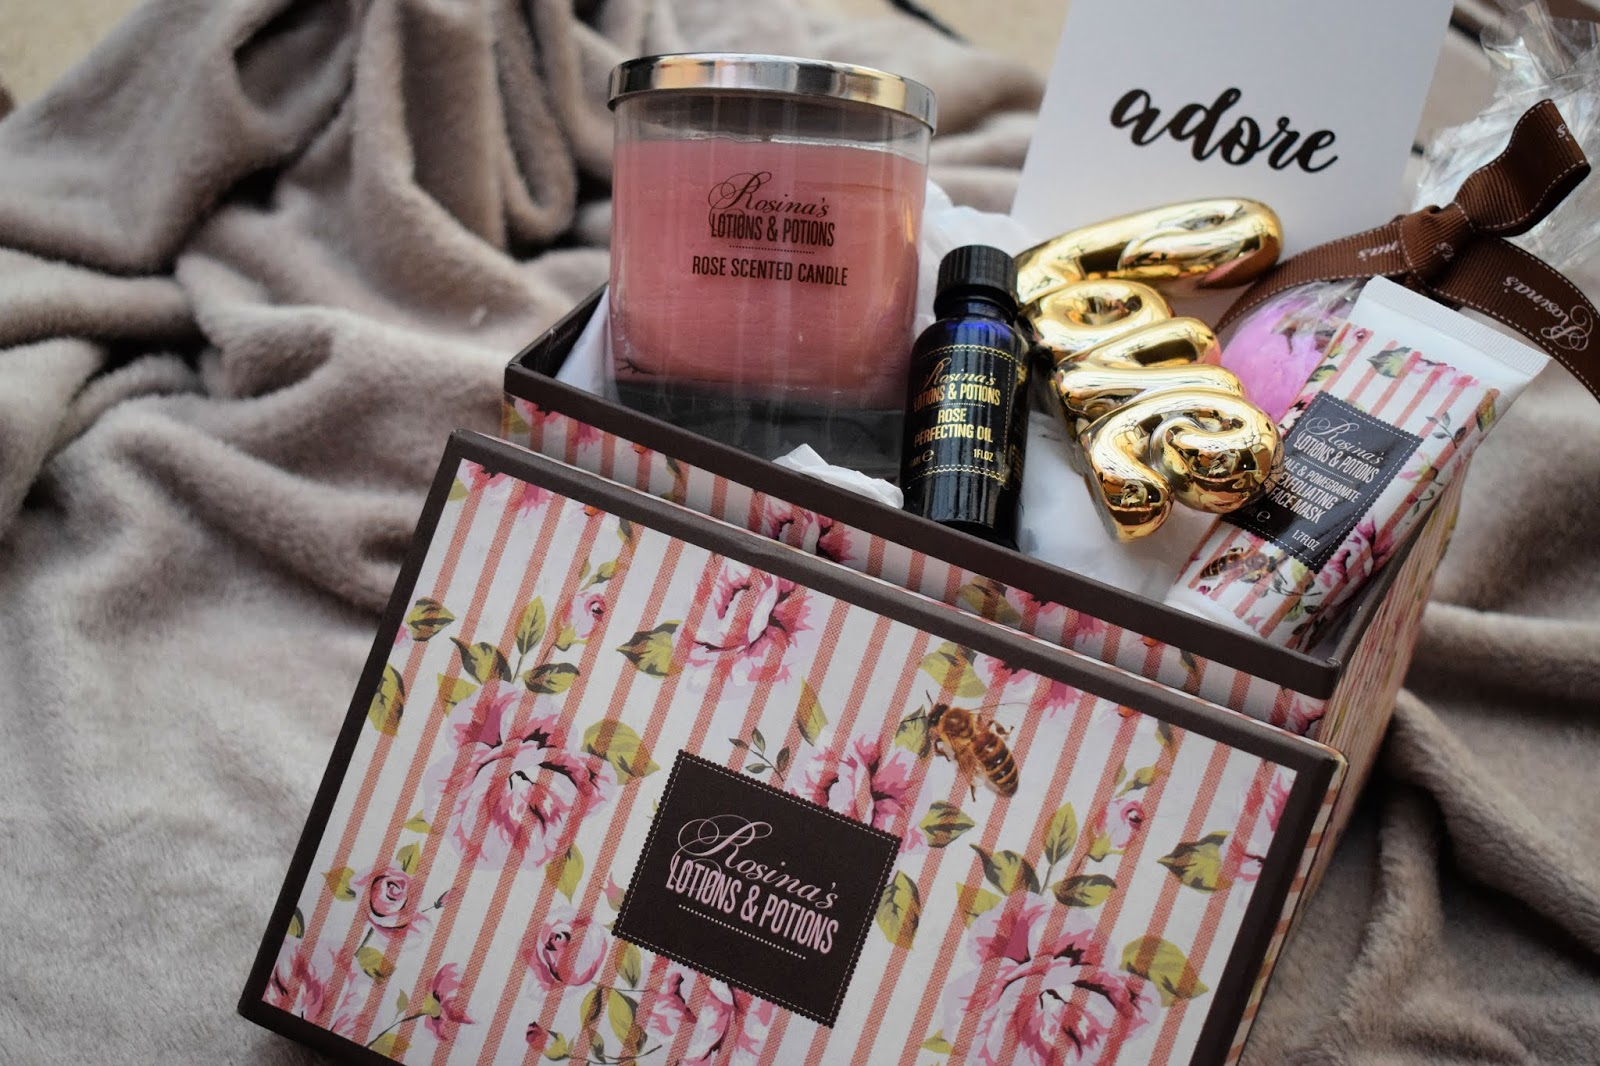 A Rose Scented Pamper with Rosina's Lotions and Potions